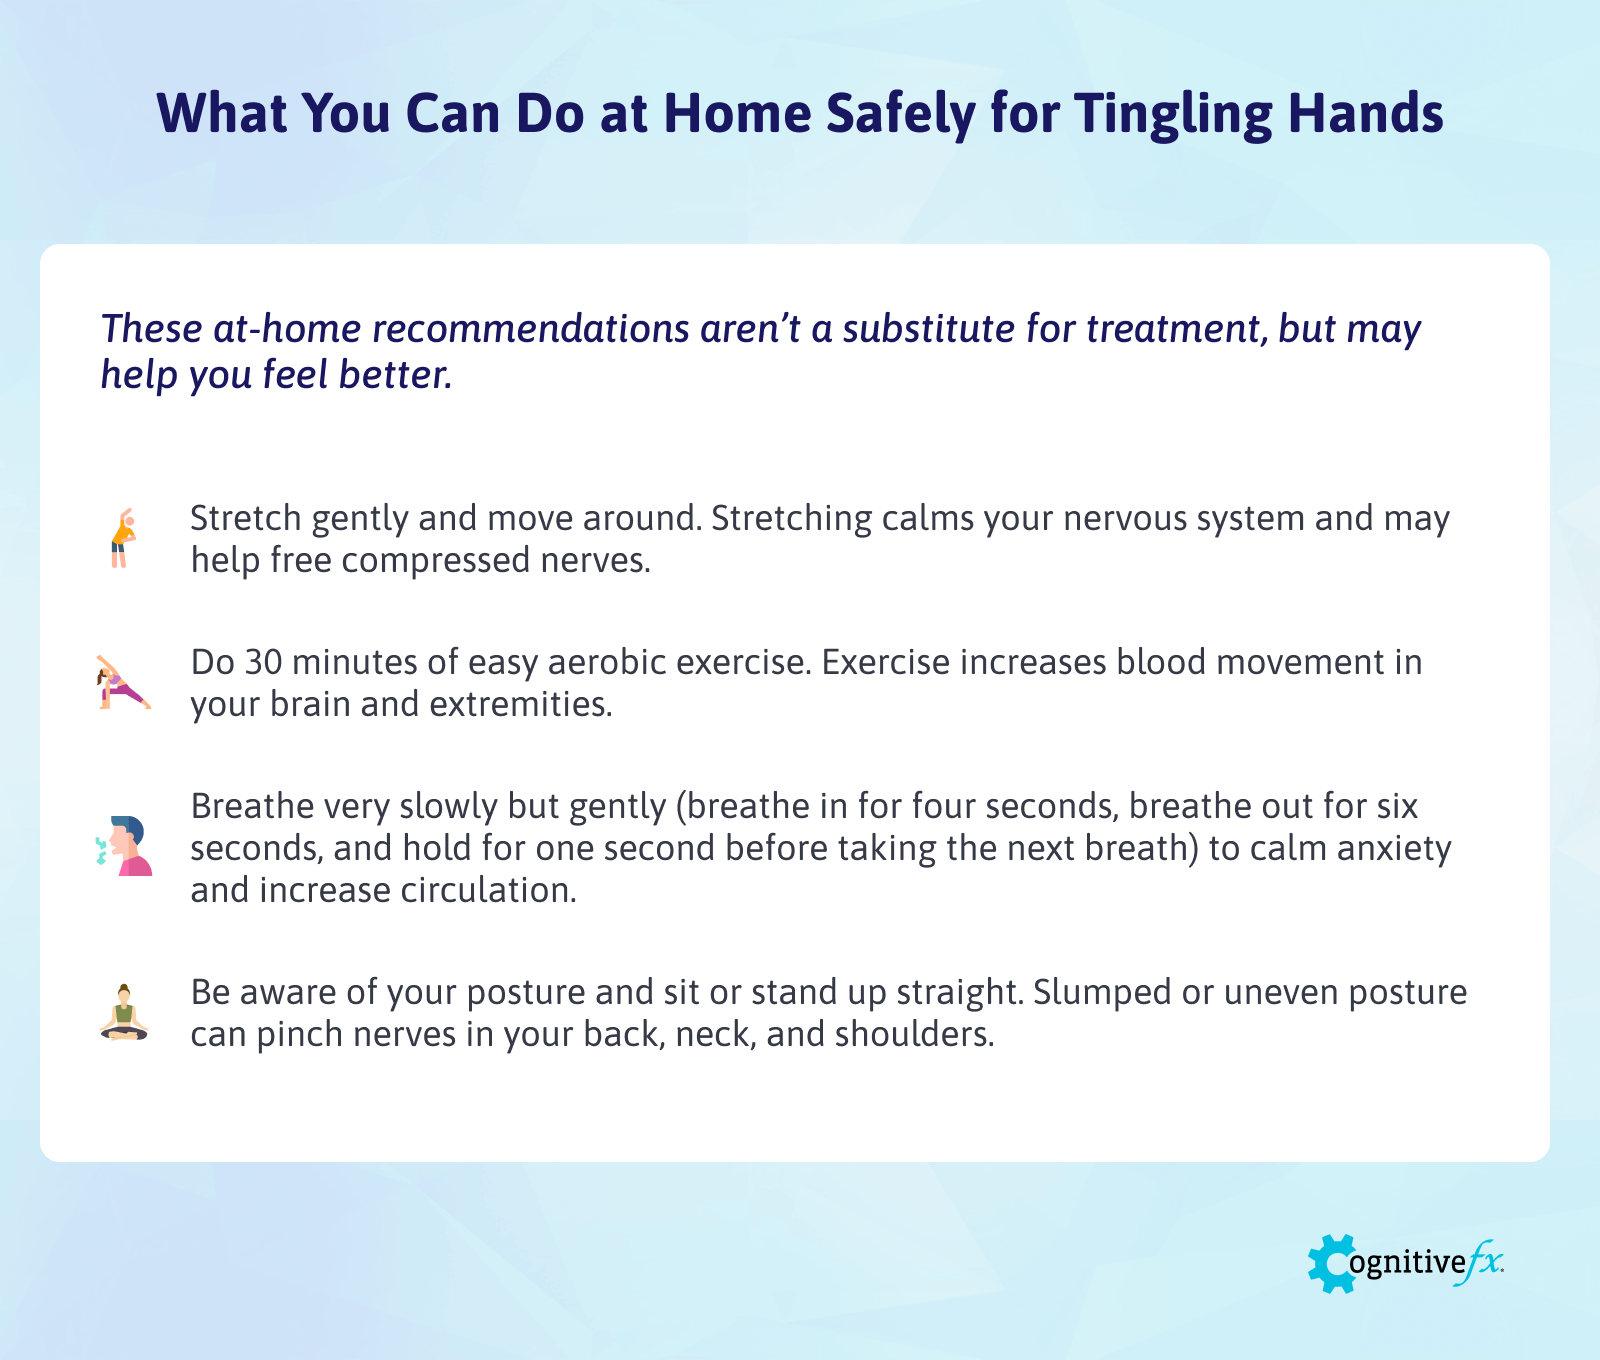 List of things that can be safely done at home